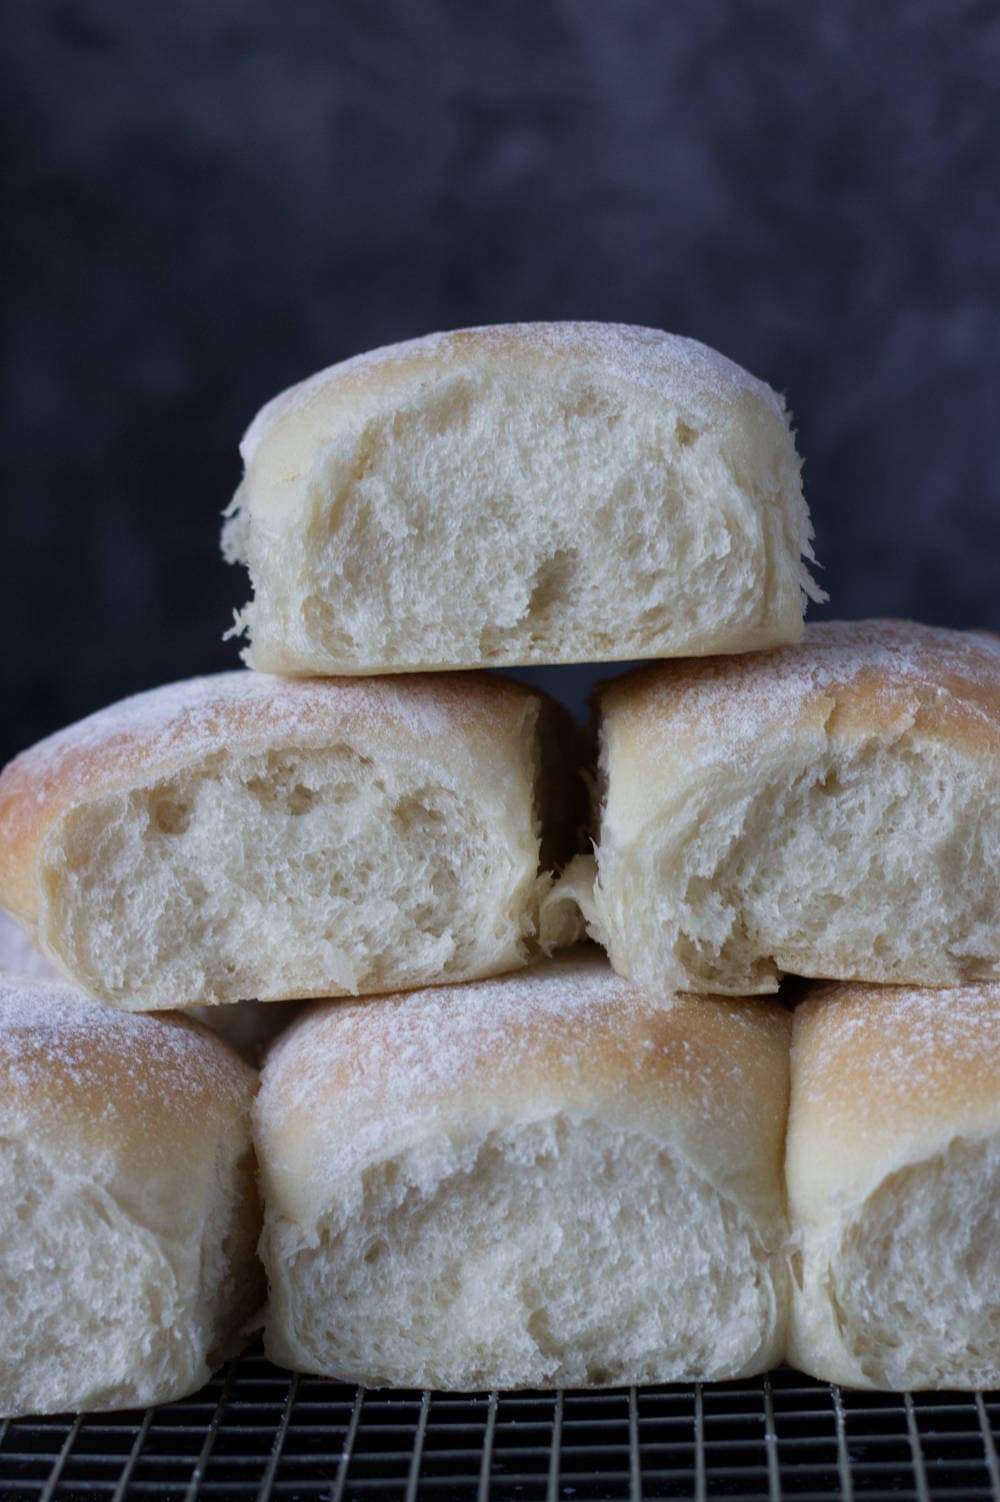 Pillowy Soft Bread Rolls with pull apart edges, guaranteed soft & fluffy every time. With easy step by step instructions!